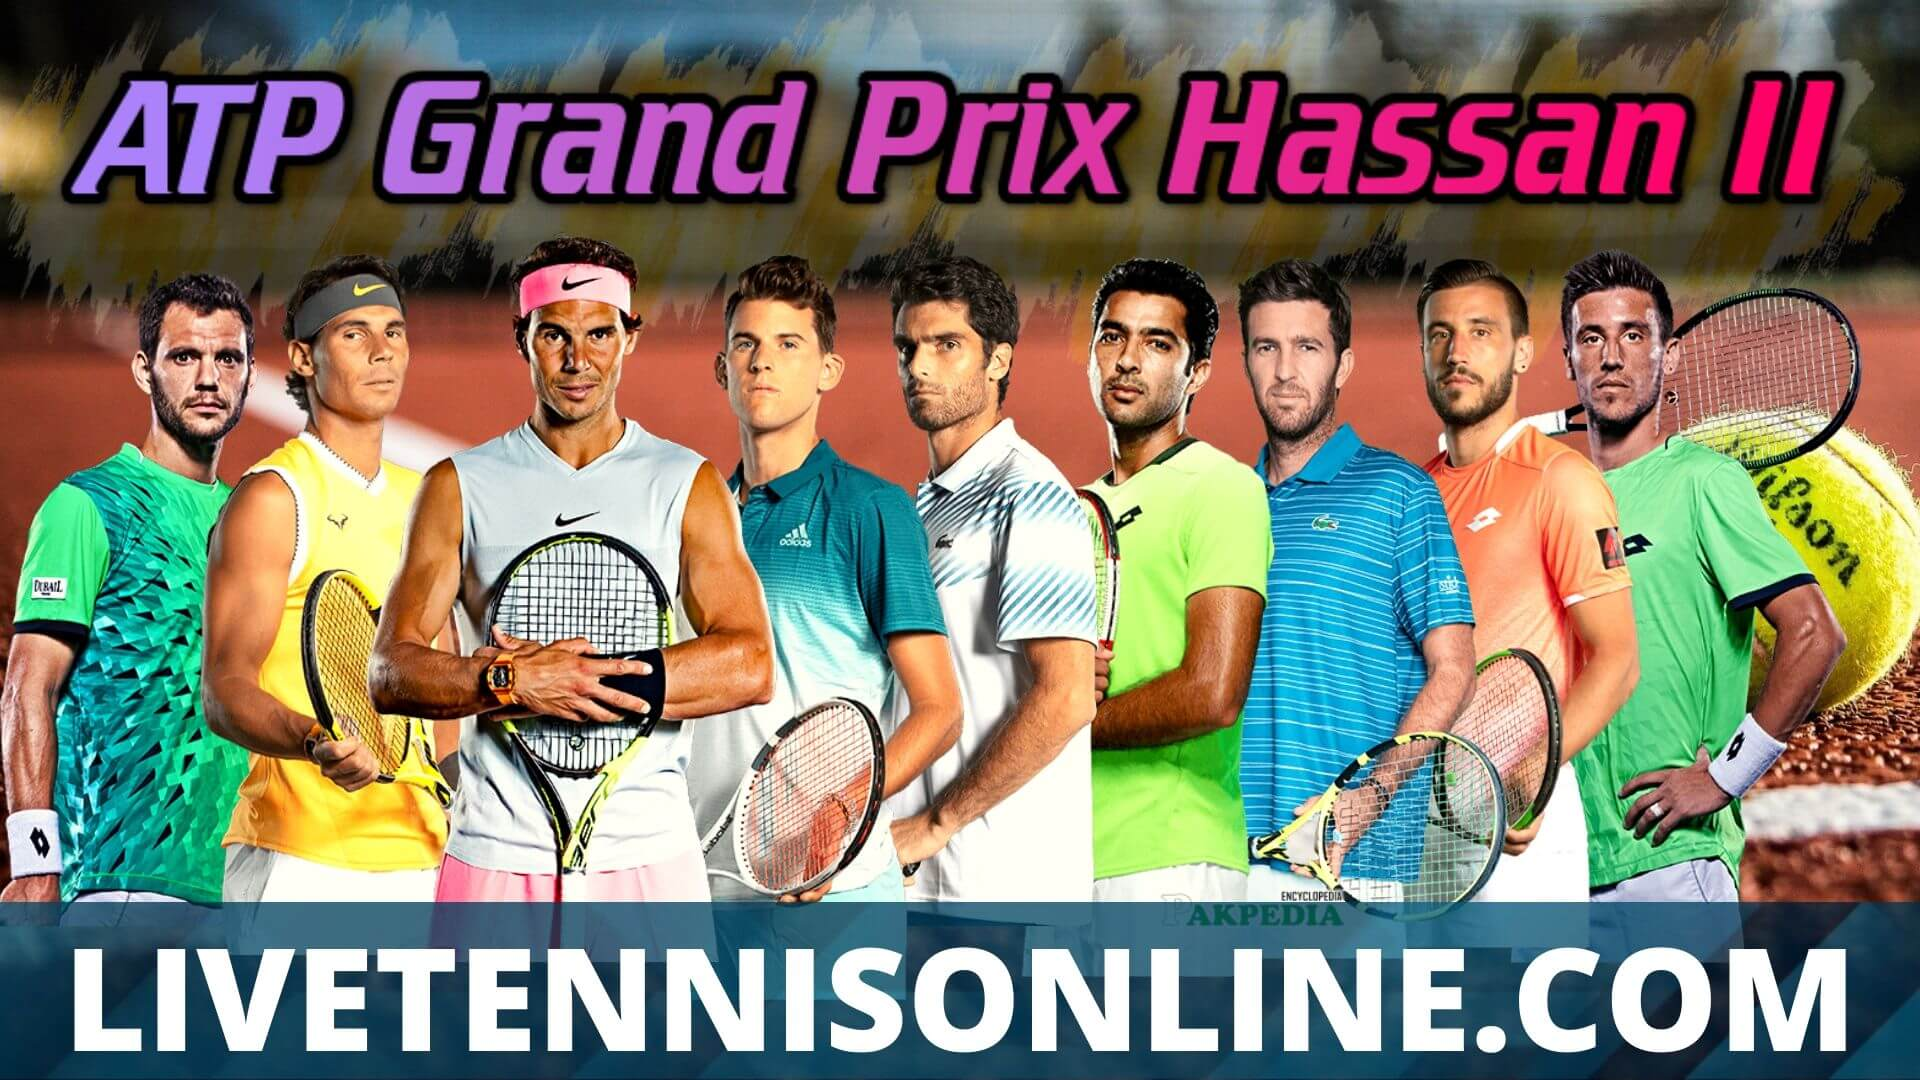 Grand Prix Hassan II Suspended 2020 | ATP Day 1